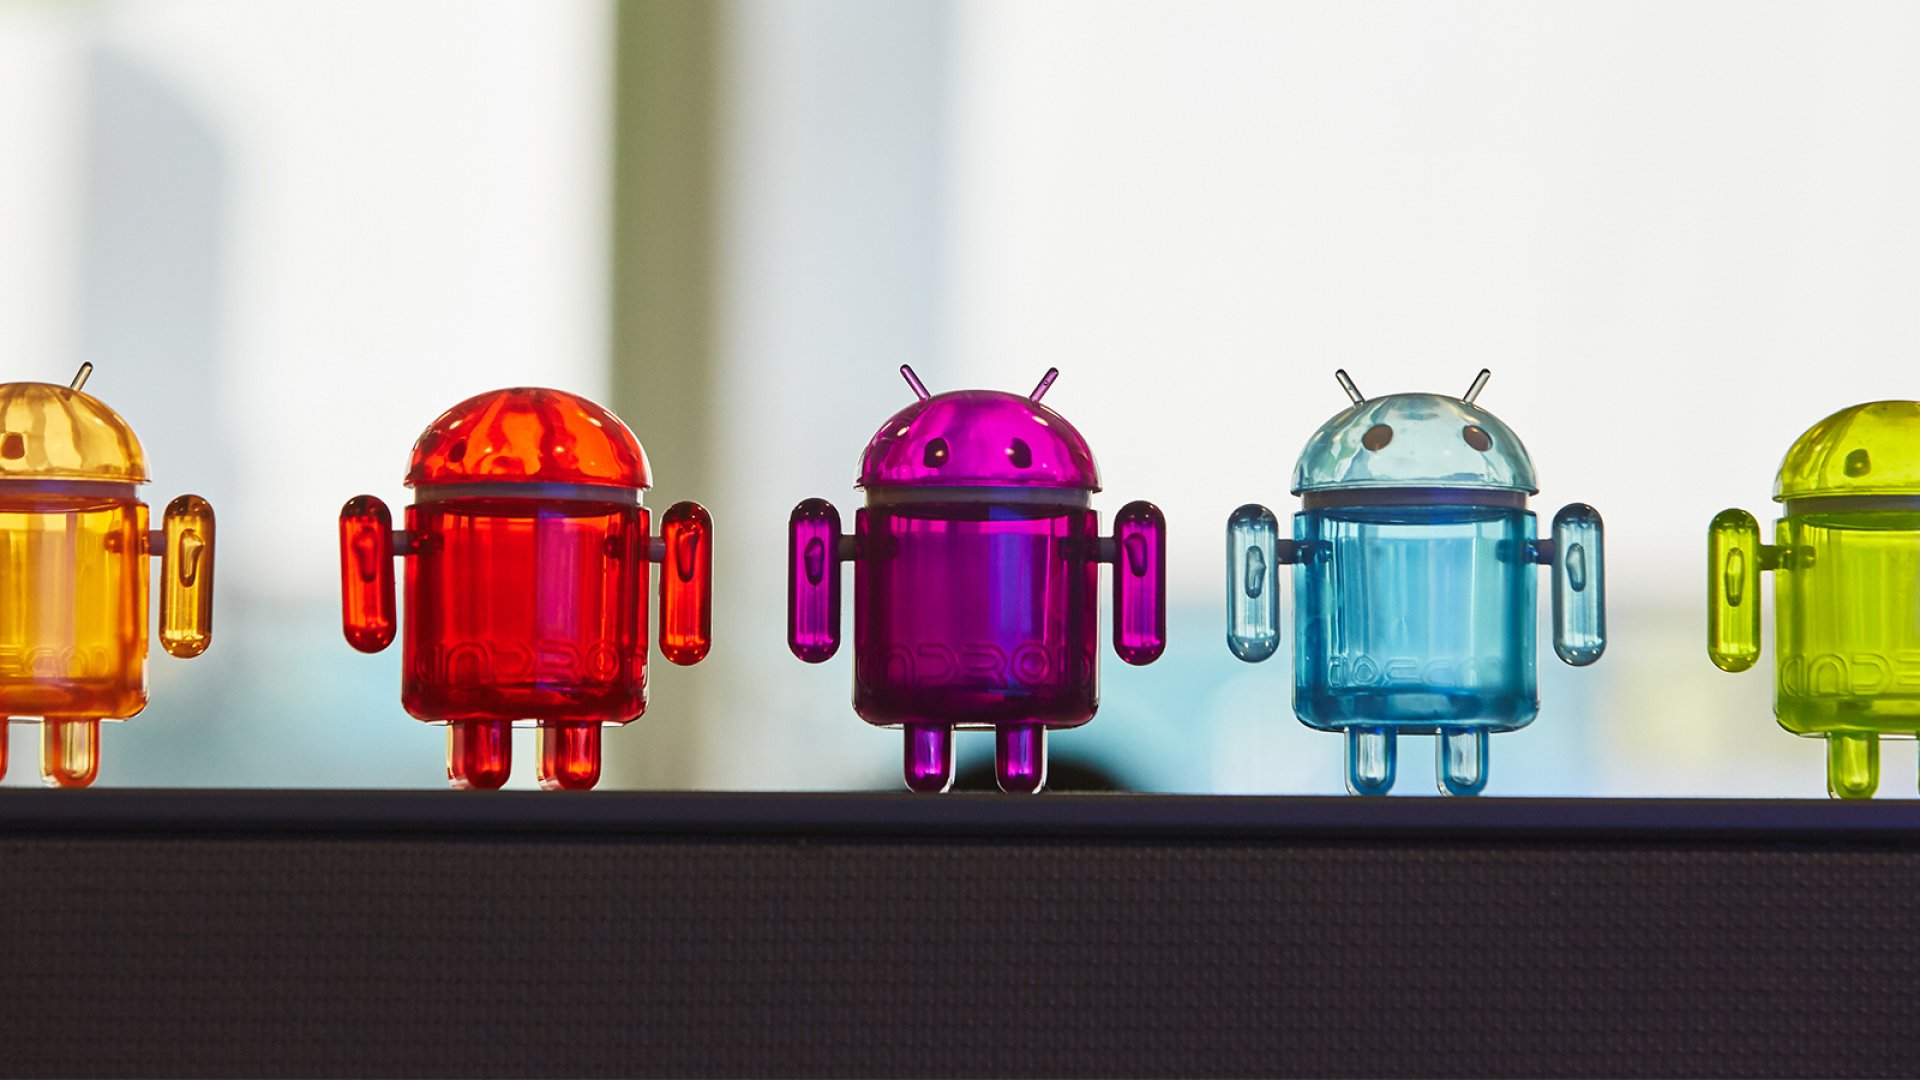 300 Google Play Store Apps Are Discovered to Contain Malware